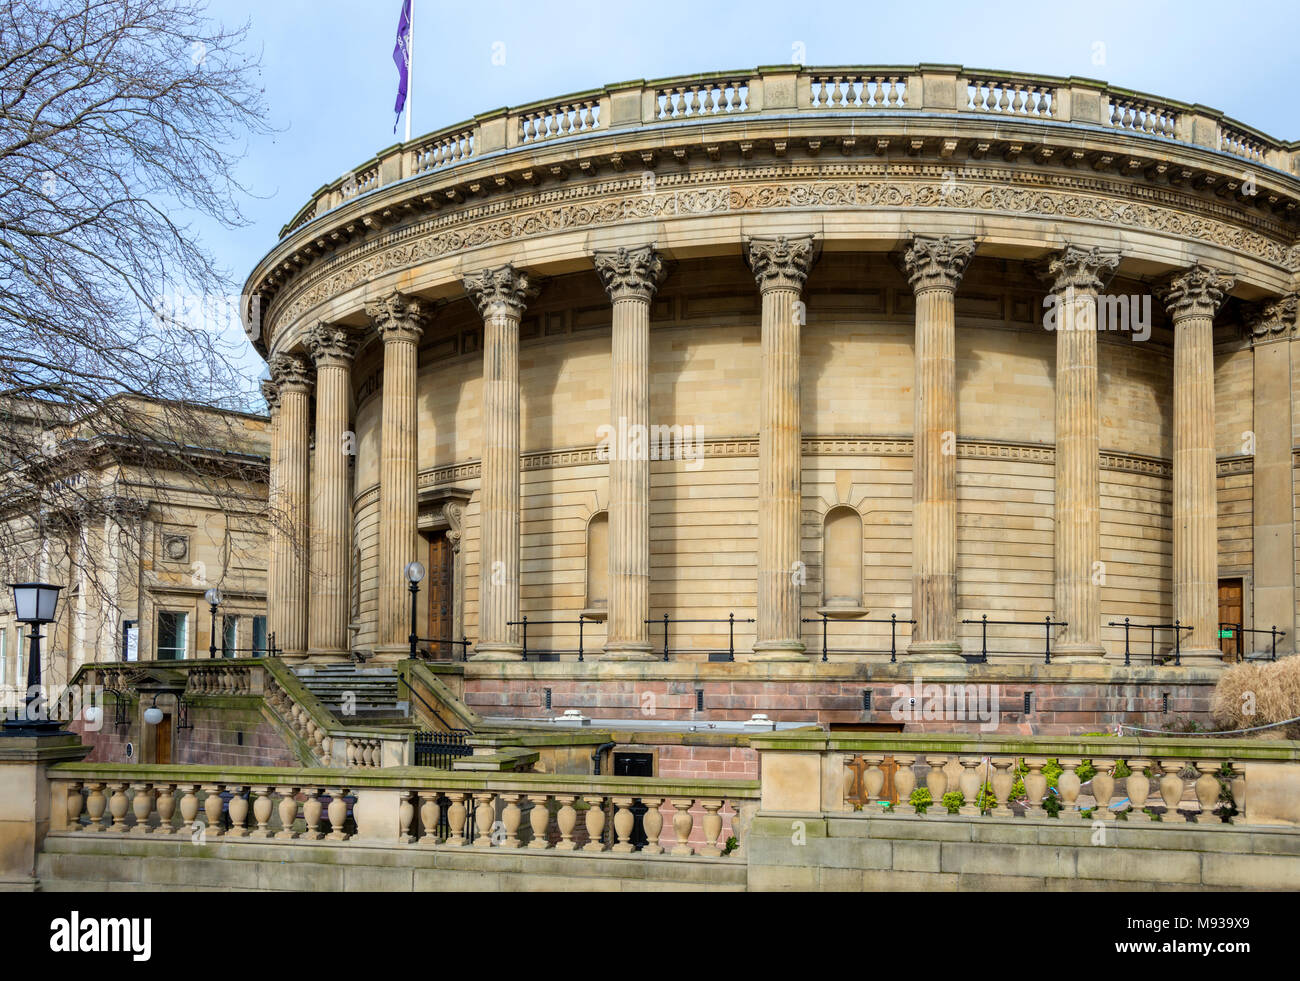 Exterior of the Picton Reading Room, Central Library,  by Cornelius Sherlock, 1879.  William Brown Street, Liverpool, England, UK - Stock Image